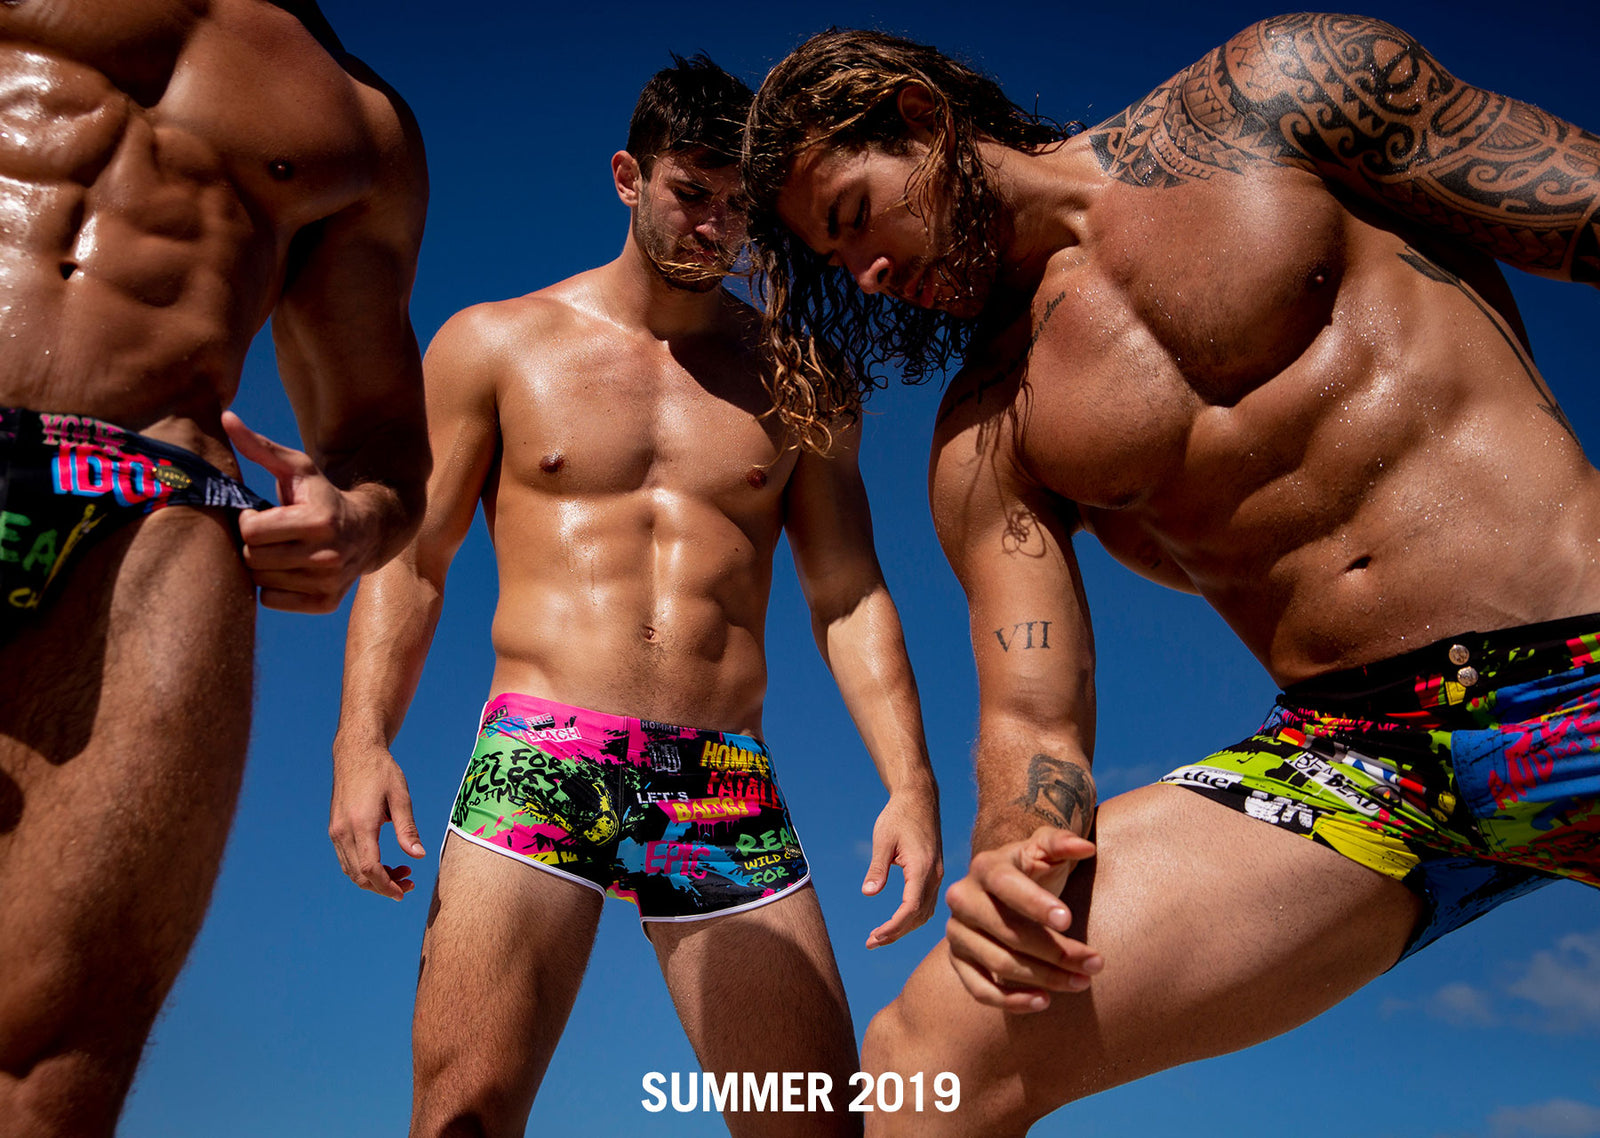 6775c43a3b BANG! - Men's Swimwear, Underwear & Clothing - From Miami, USA